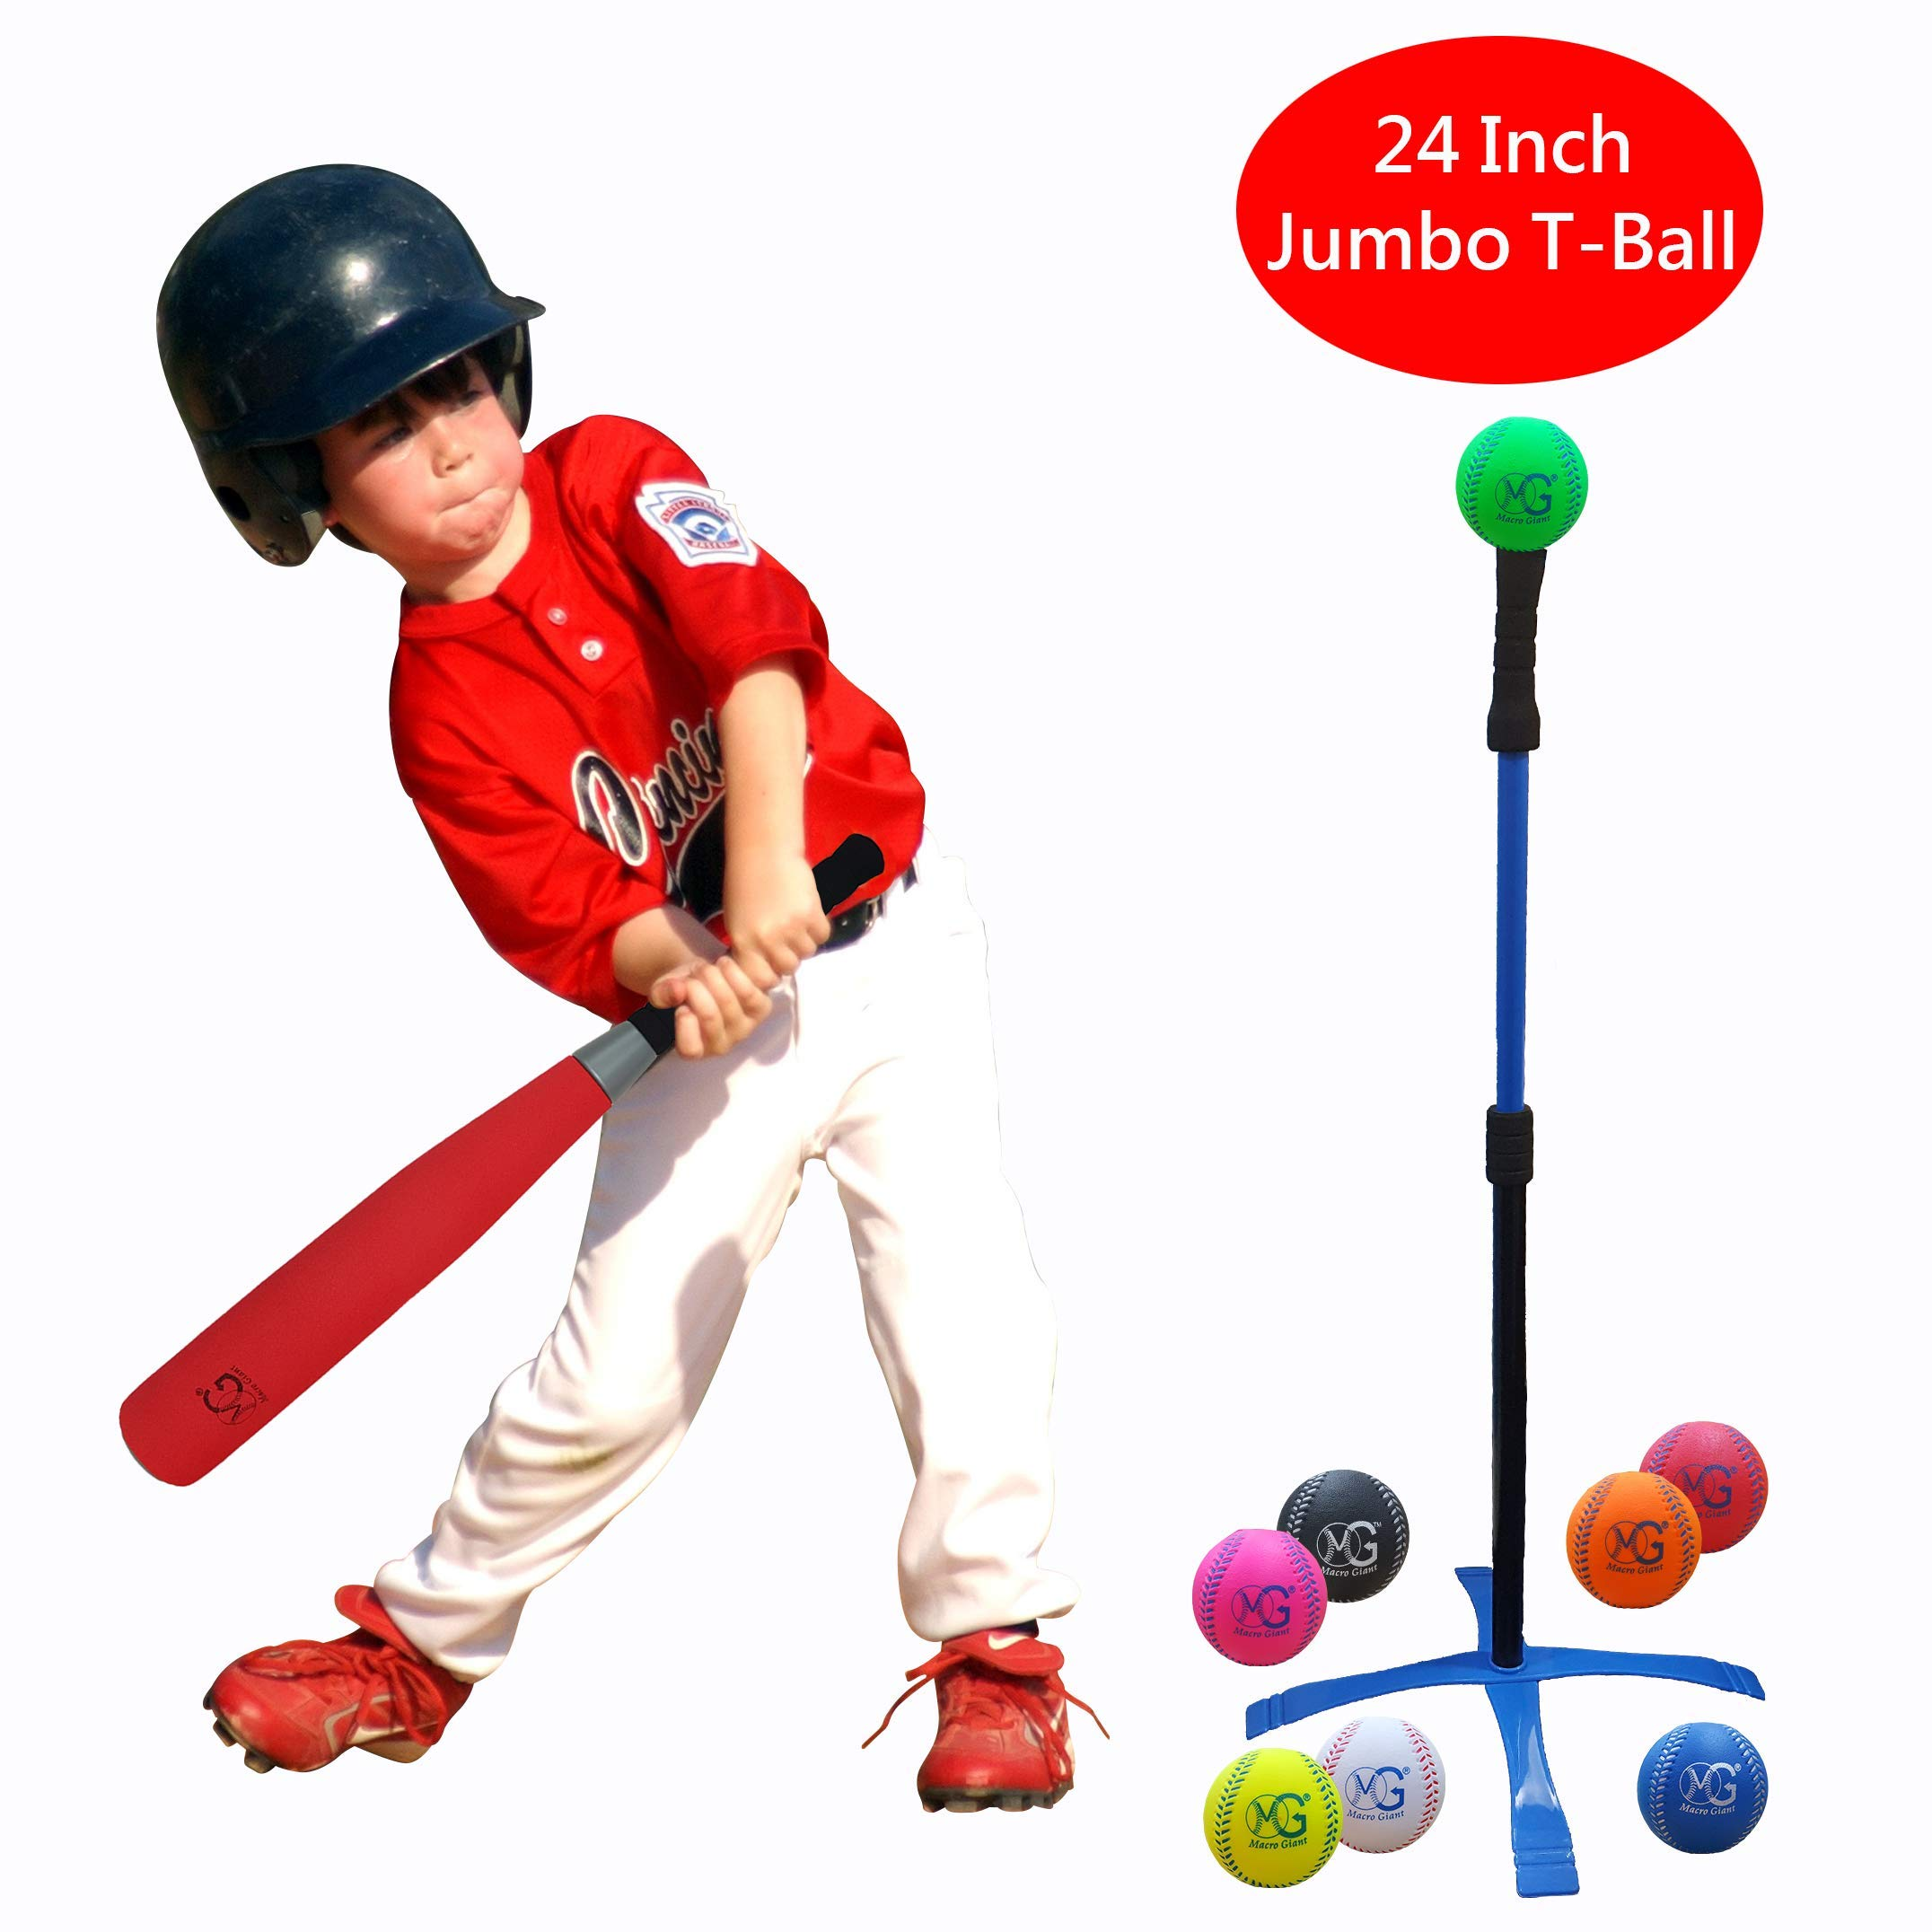 Macro Giant 24 Inch Jumbo T Ball, Tee Ball, T-Ball Set, 1 Red Jumbo Foam Bat, 8 Foam Baseballs, Assorted Color, Training Practice, Youth Batting Trainer, School Playground, Kid Toy by MG MACRO GIANT